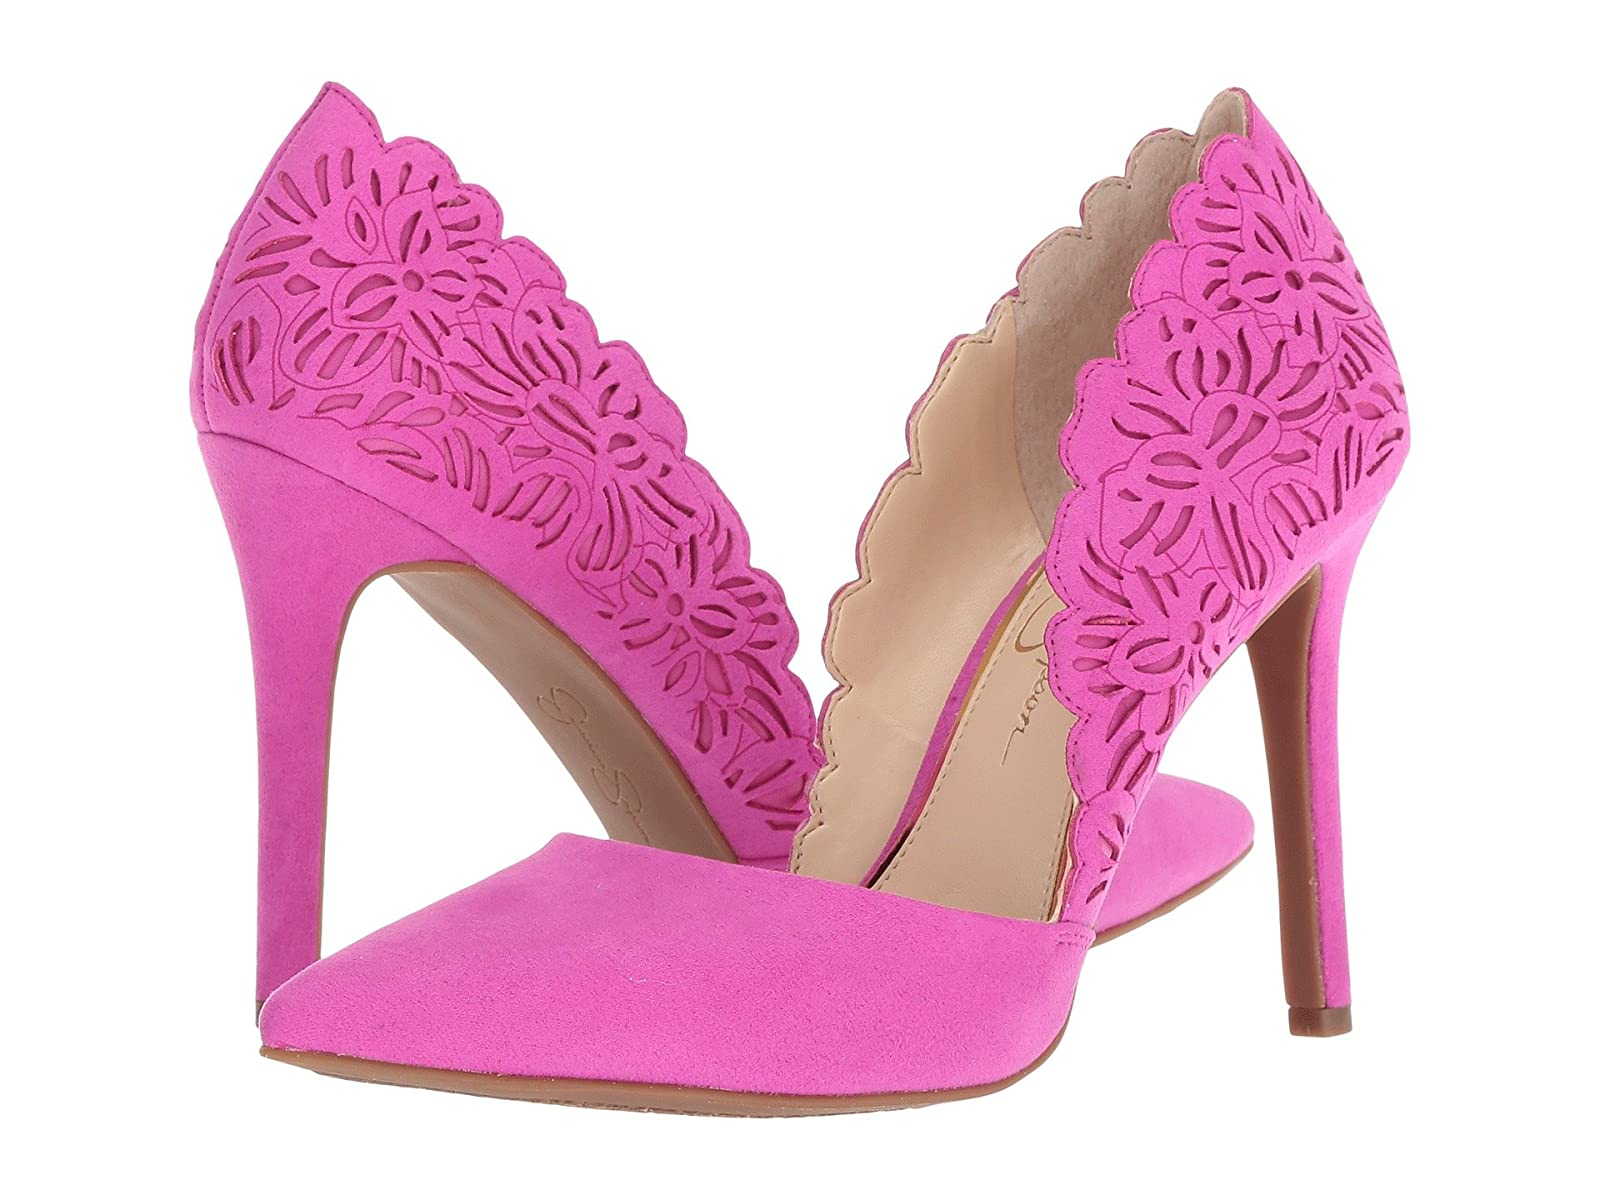 Jessica Simpson CasselCheap and distinctive eye-catching shoes